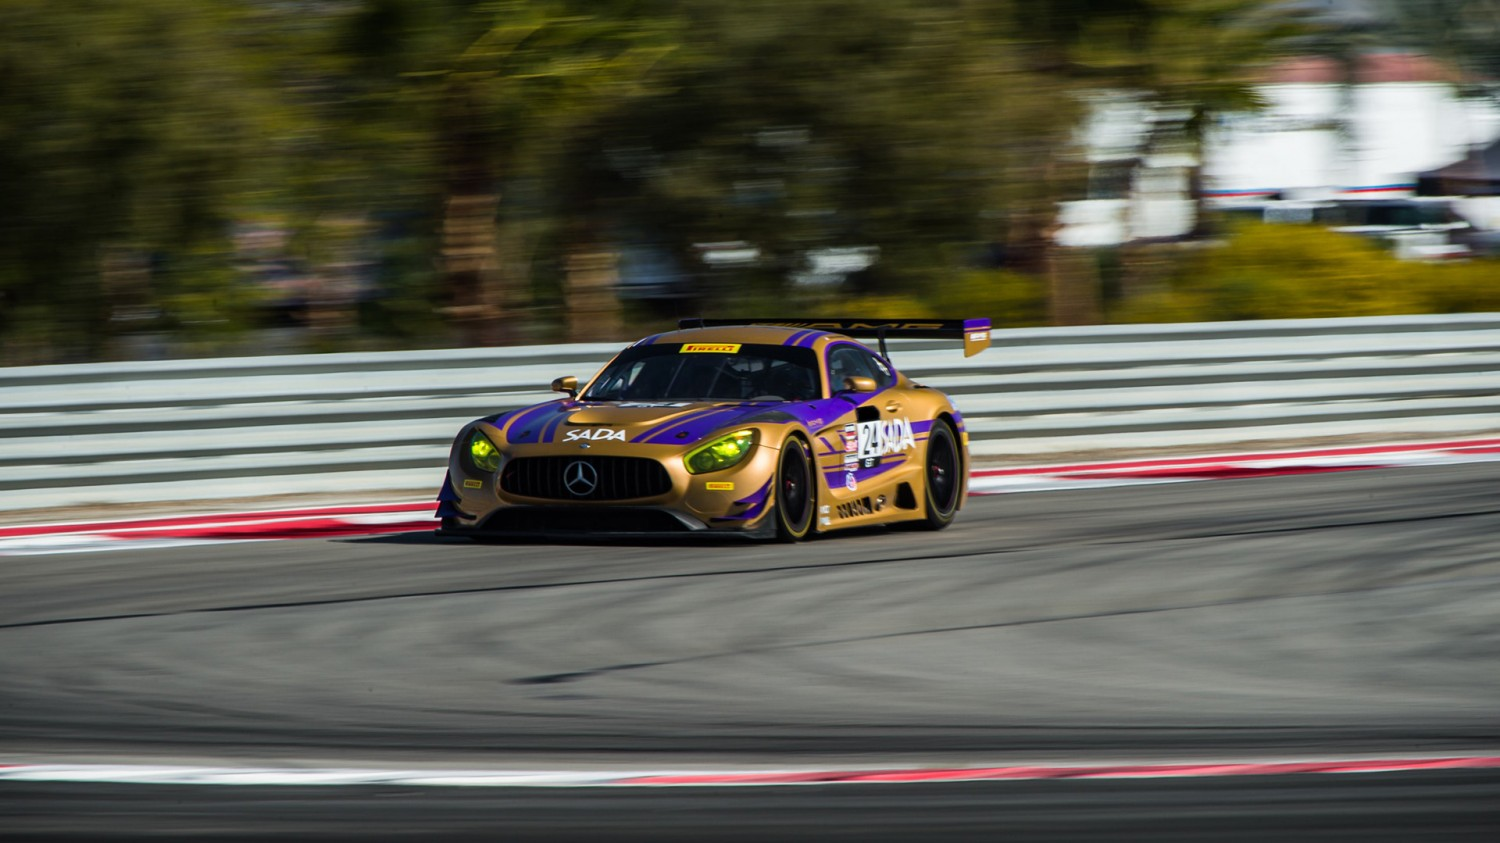 Los Angeles-Based Race Car Driver Steven Aghakhani Competes in Tribute to Kobe Bryant This Weekend in SRO Winter Invitational at The Thermal Club